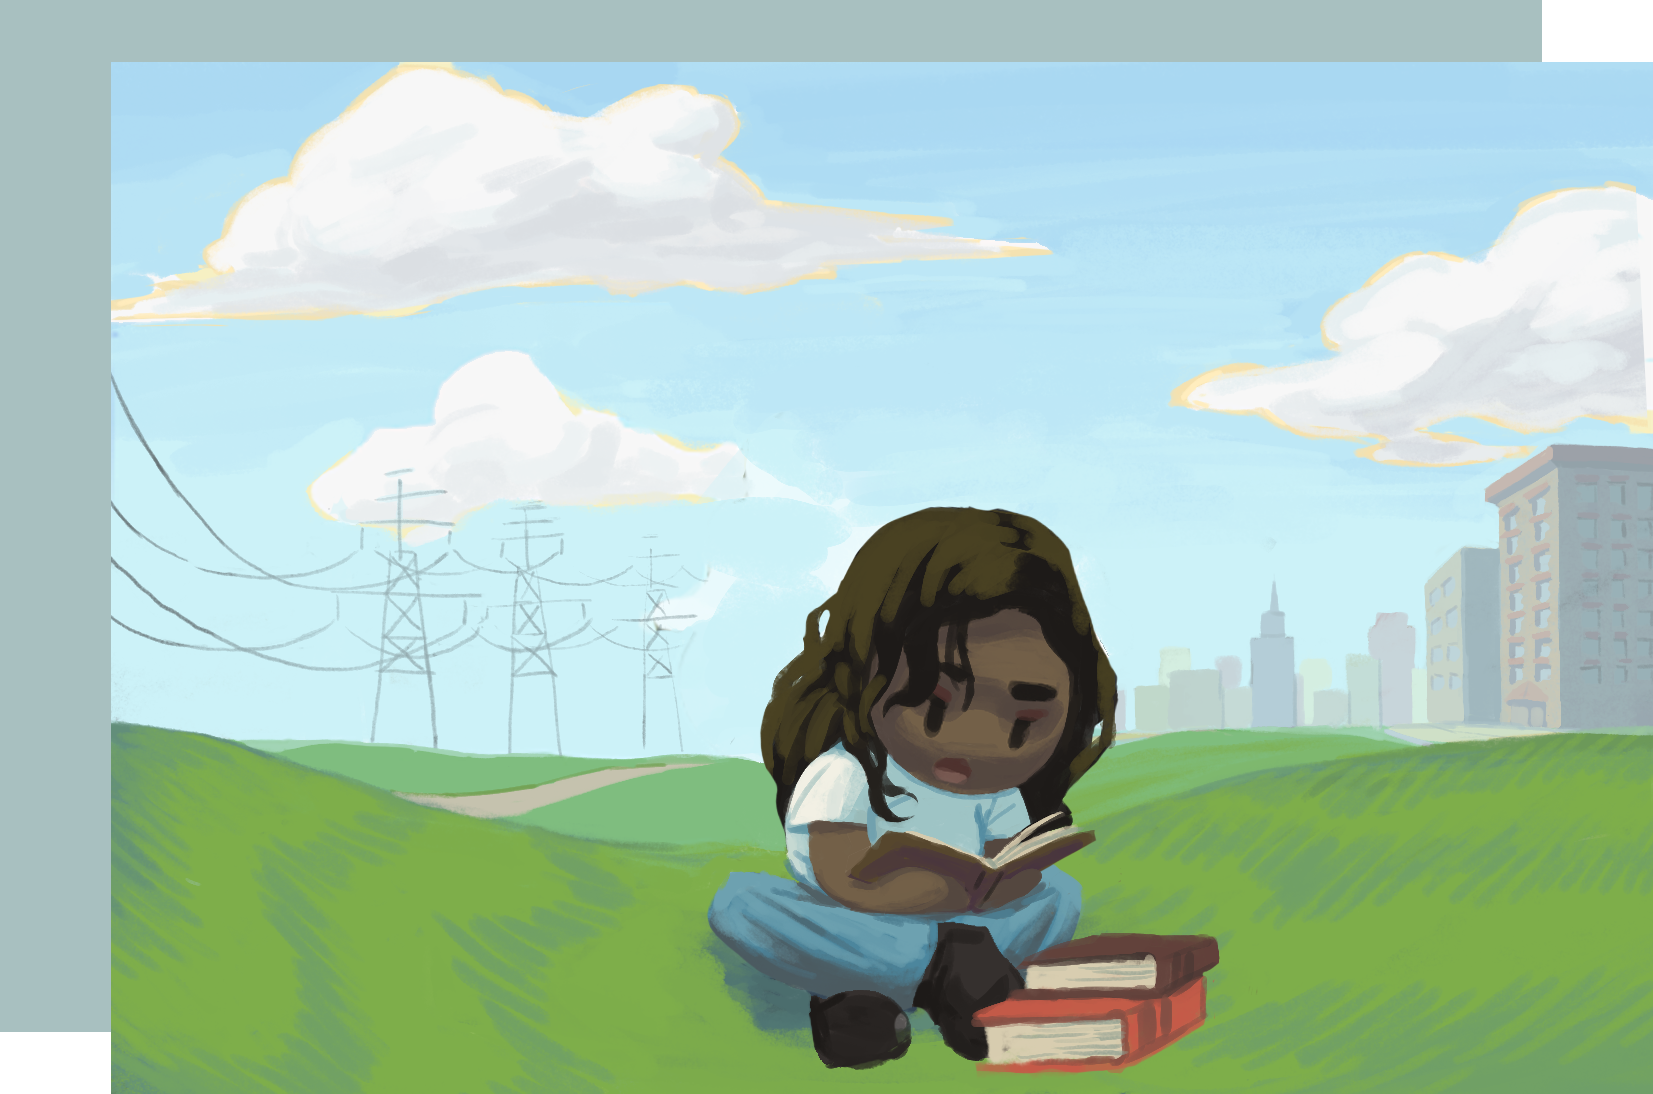 A woman studying with a pile of books outside